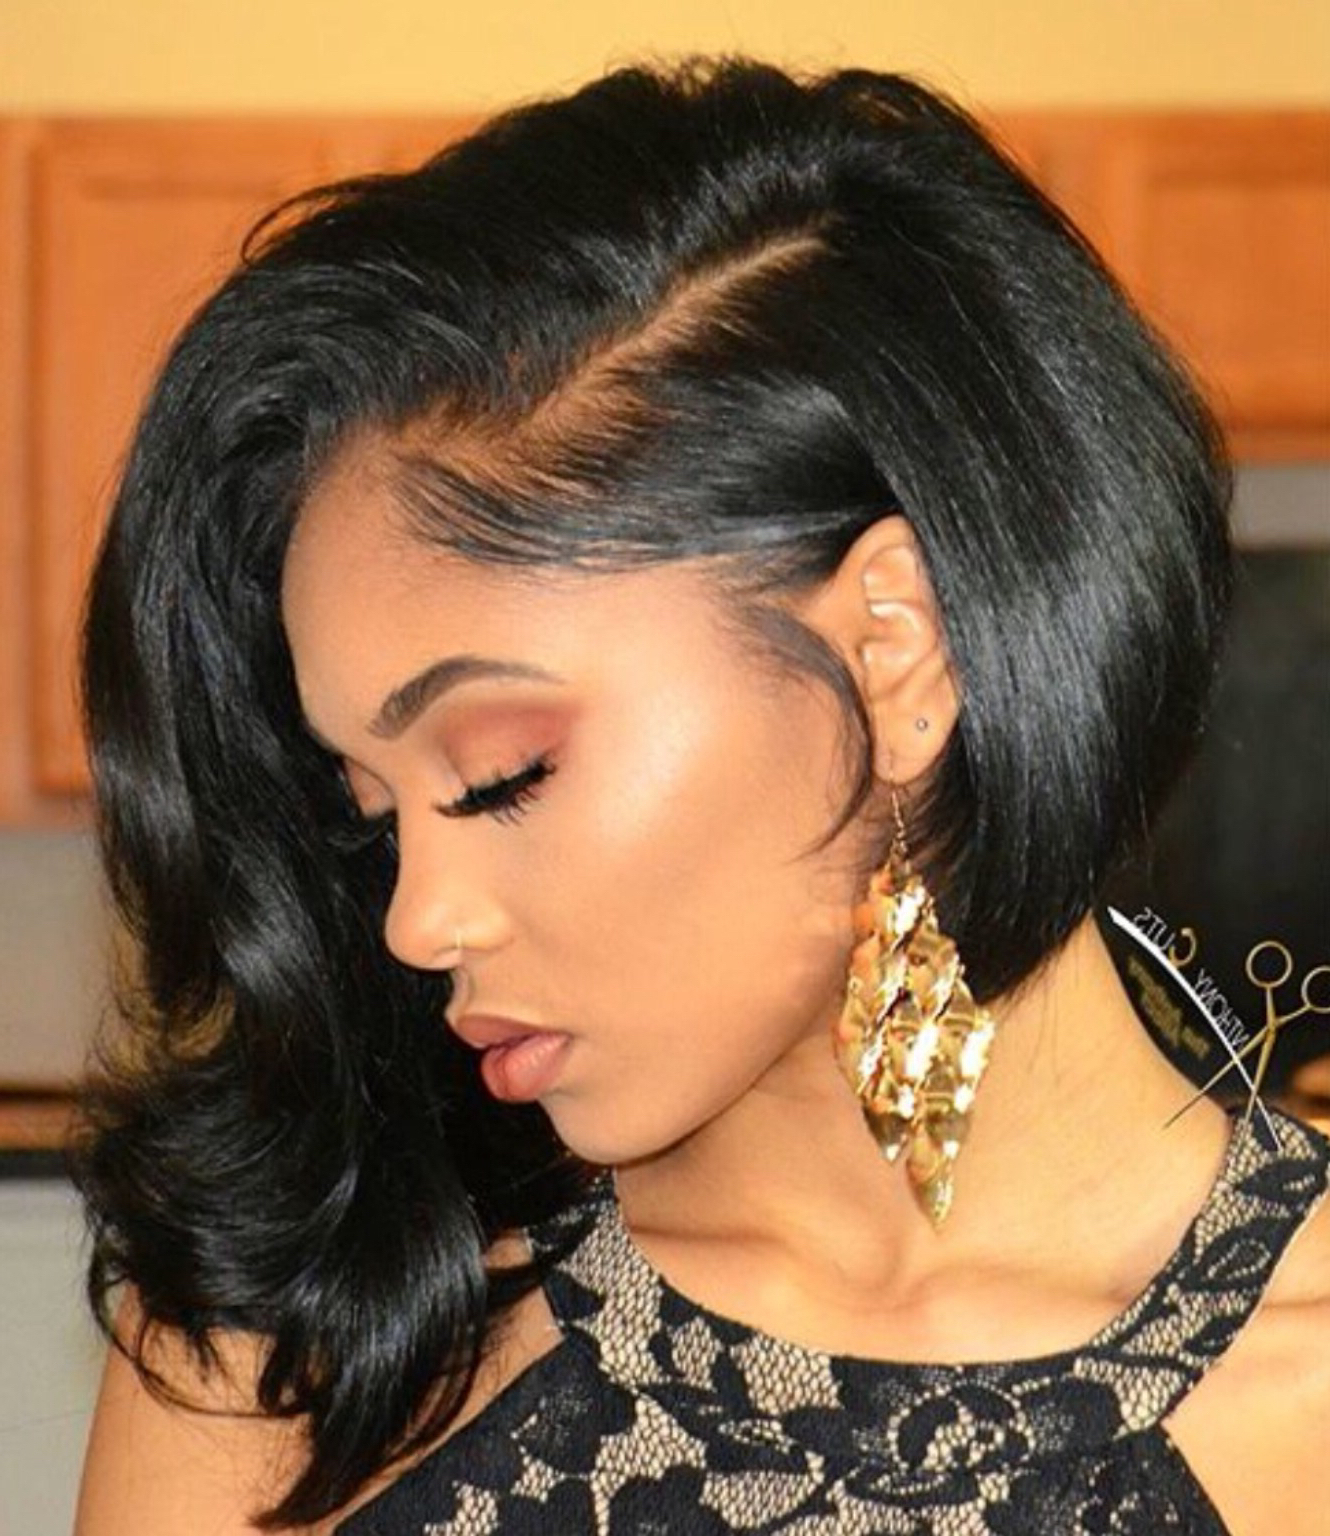 15 Curly Weave Hairstyles For Long And Short Hair Types Pertaining To Short Black Hairstyles With Tousled Curls (View 3 of 25)